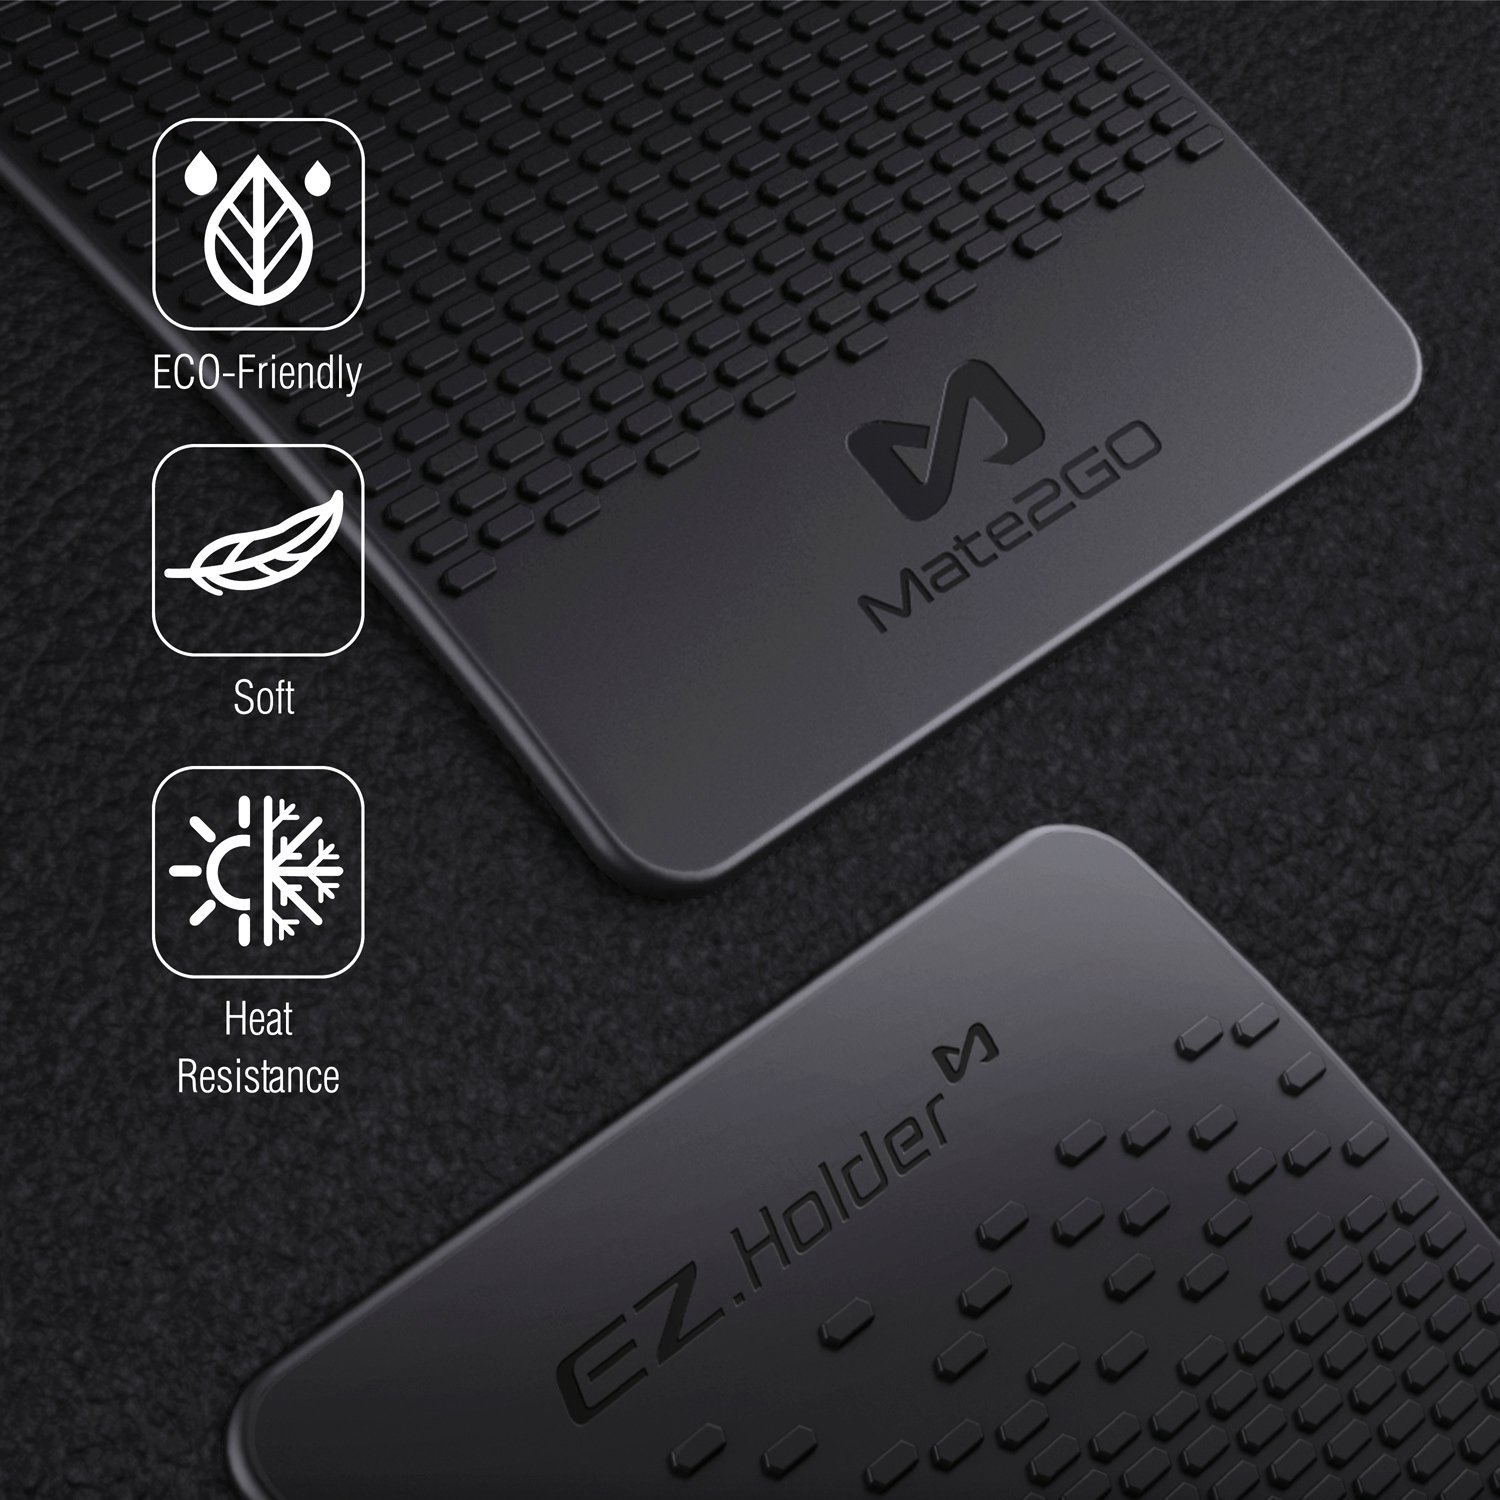 Non Slip Dashboard Gel Pad Mate2GO Anti-Slip Dash Pad Sticky Car Mats for Dashboard to Secure Cell Phones Sunglasses Keys and Cards 3 Pack